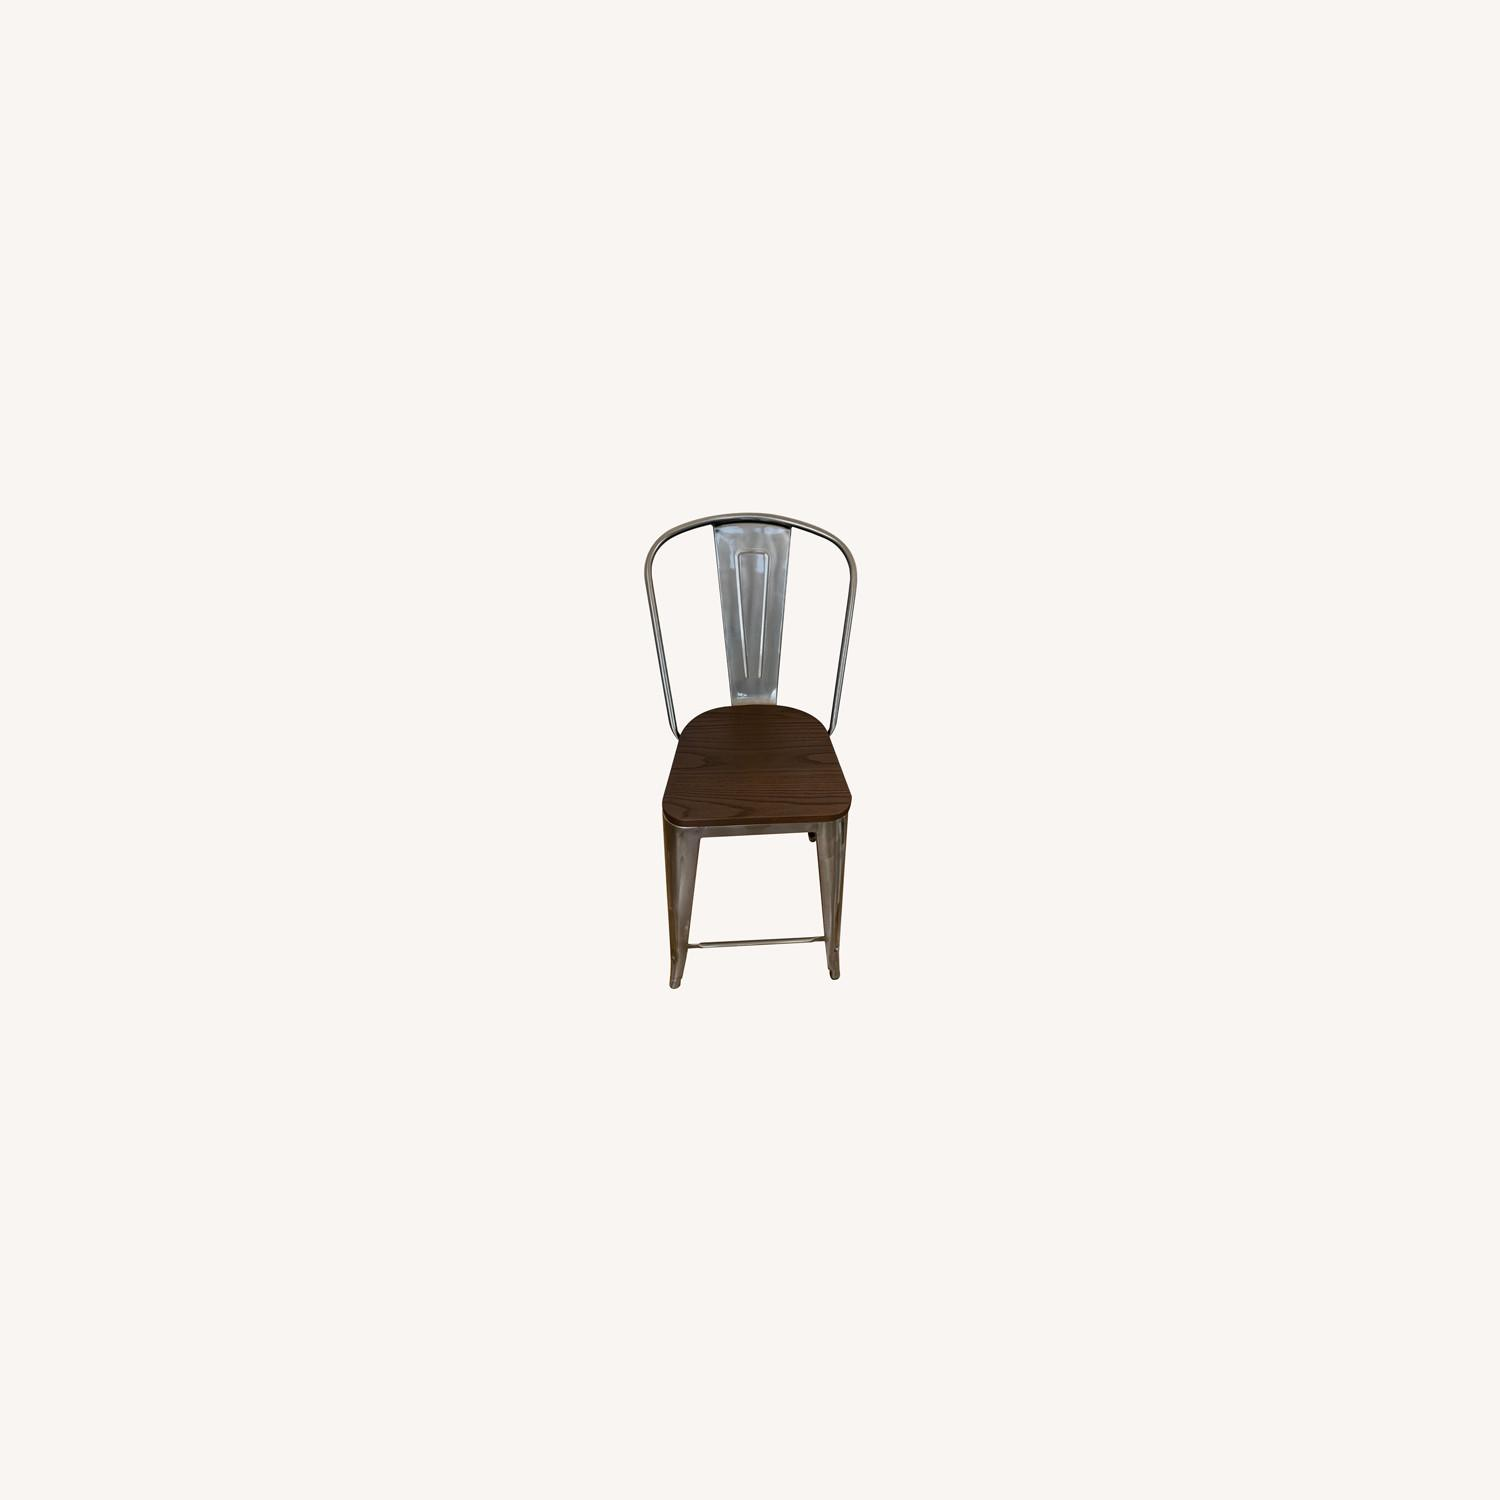 Il Loft Chairs for Counter Table - image-0